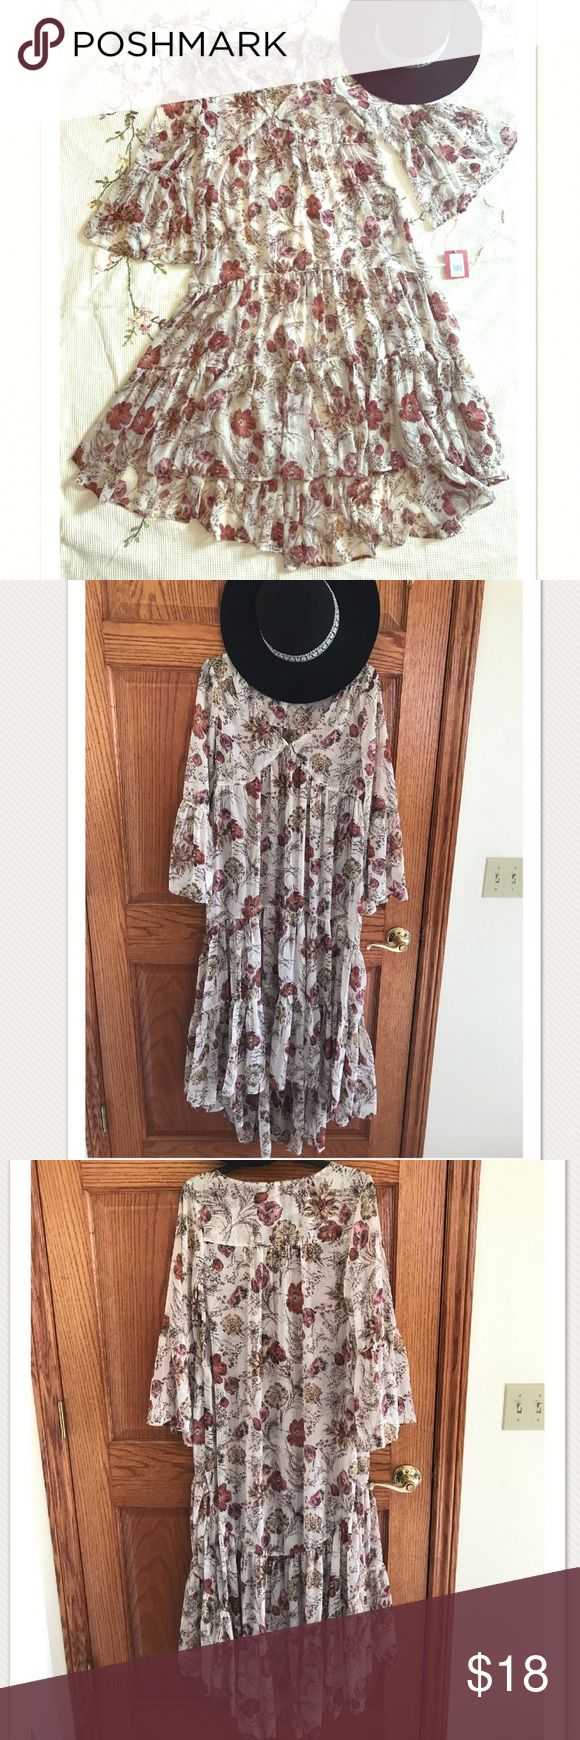 NWT!💕 Flowy Hippie Boho Floral Festival Dress! 💕 NWT gorgeous Mossimo dress size small in a beautiful ivory/cream floral print with open flowy sleeves and ruched tiers down the skirt. Slight hi-lo hem and a little sheer so it would be perfect with a slip dress or cute bodysuit underneath! Size small but it is looser and flowy, I usually wear a large and it fit fine on me! The perfect layering piece for any hippie boho music festival! In perfect condition with no flaws! 💕 Mossimo Supply…